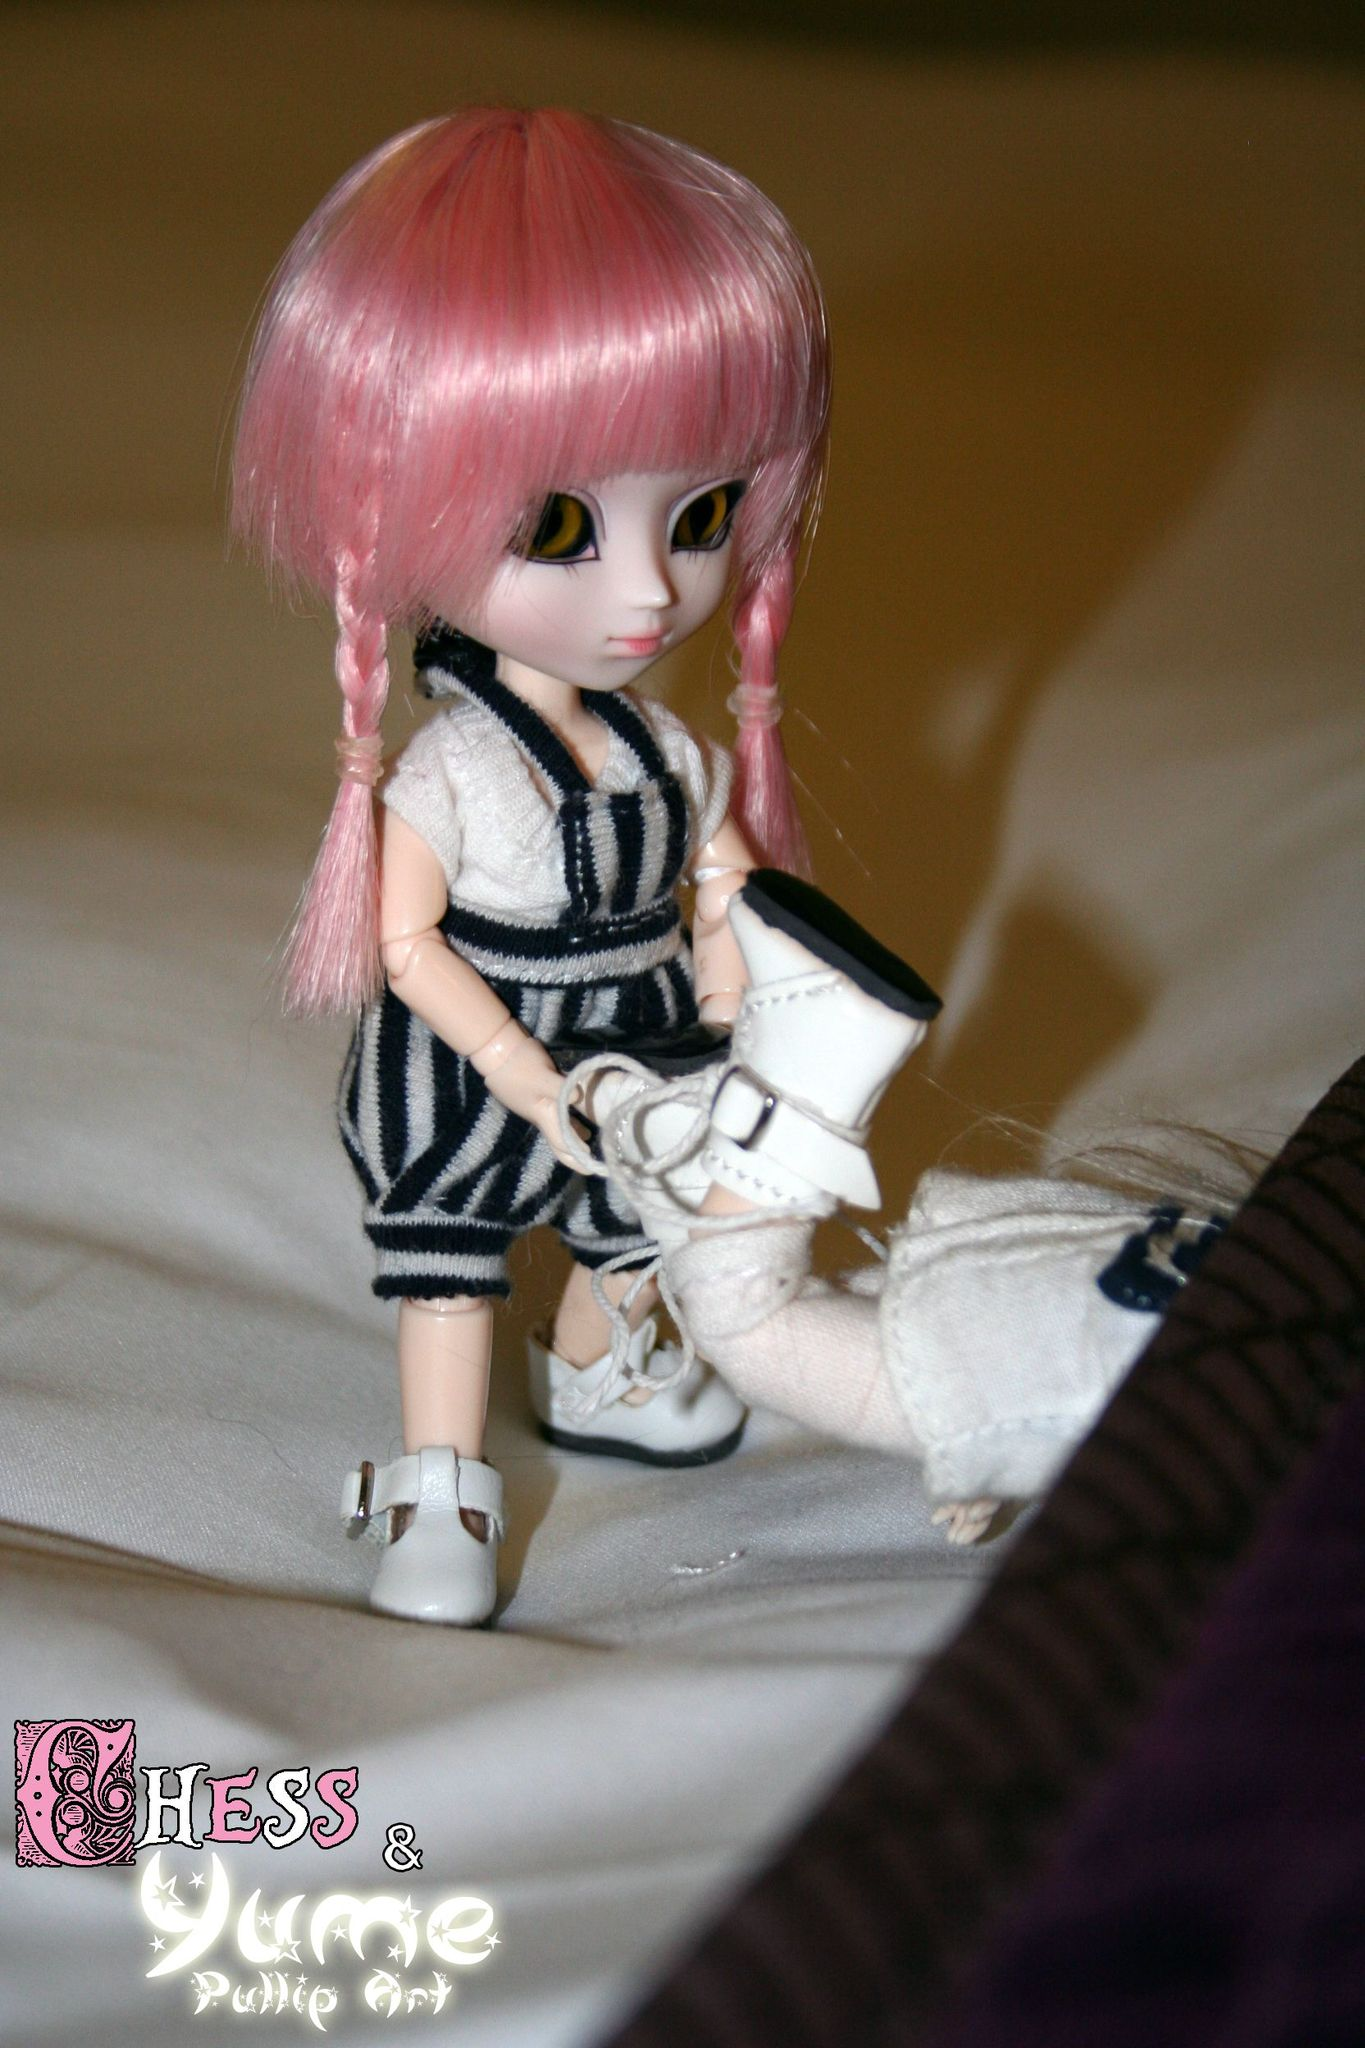 Little Pullip, Little Dal